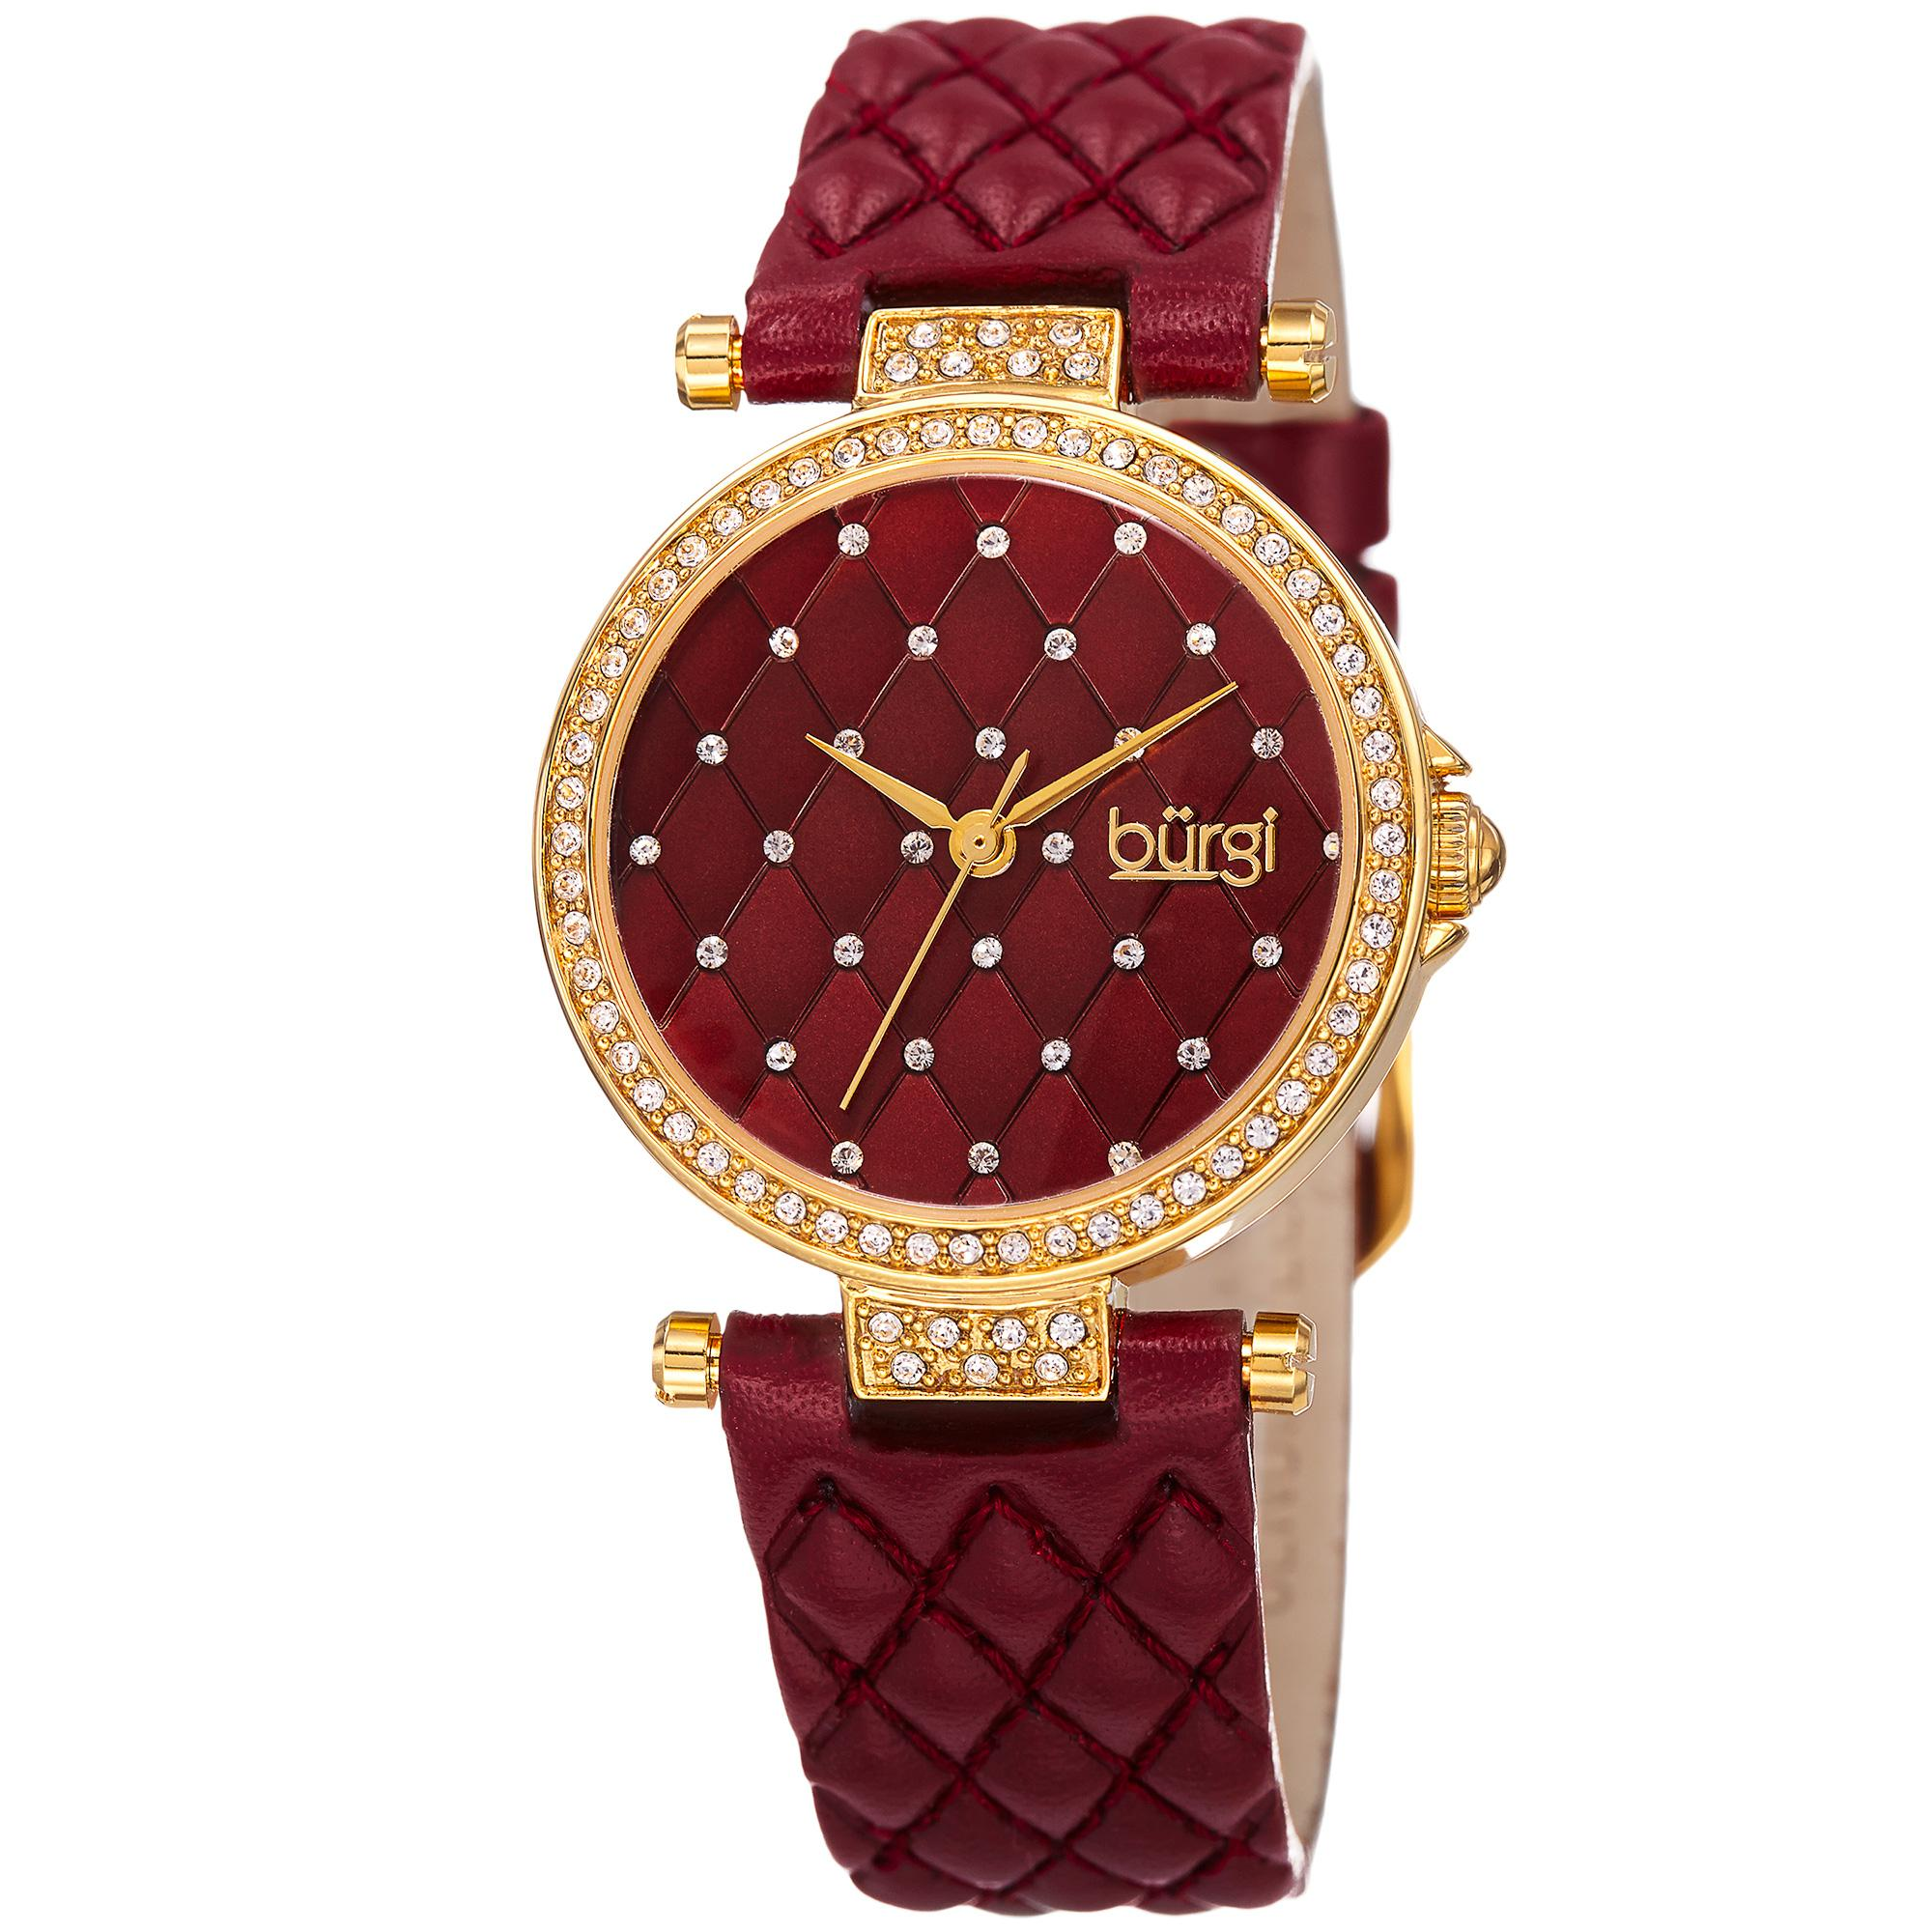 kidston watch watchshop red com ladies rose briar strap watches dot leather cath polka